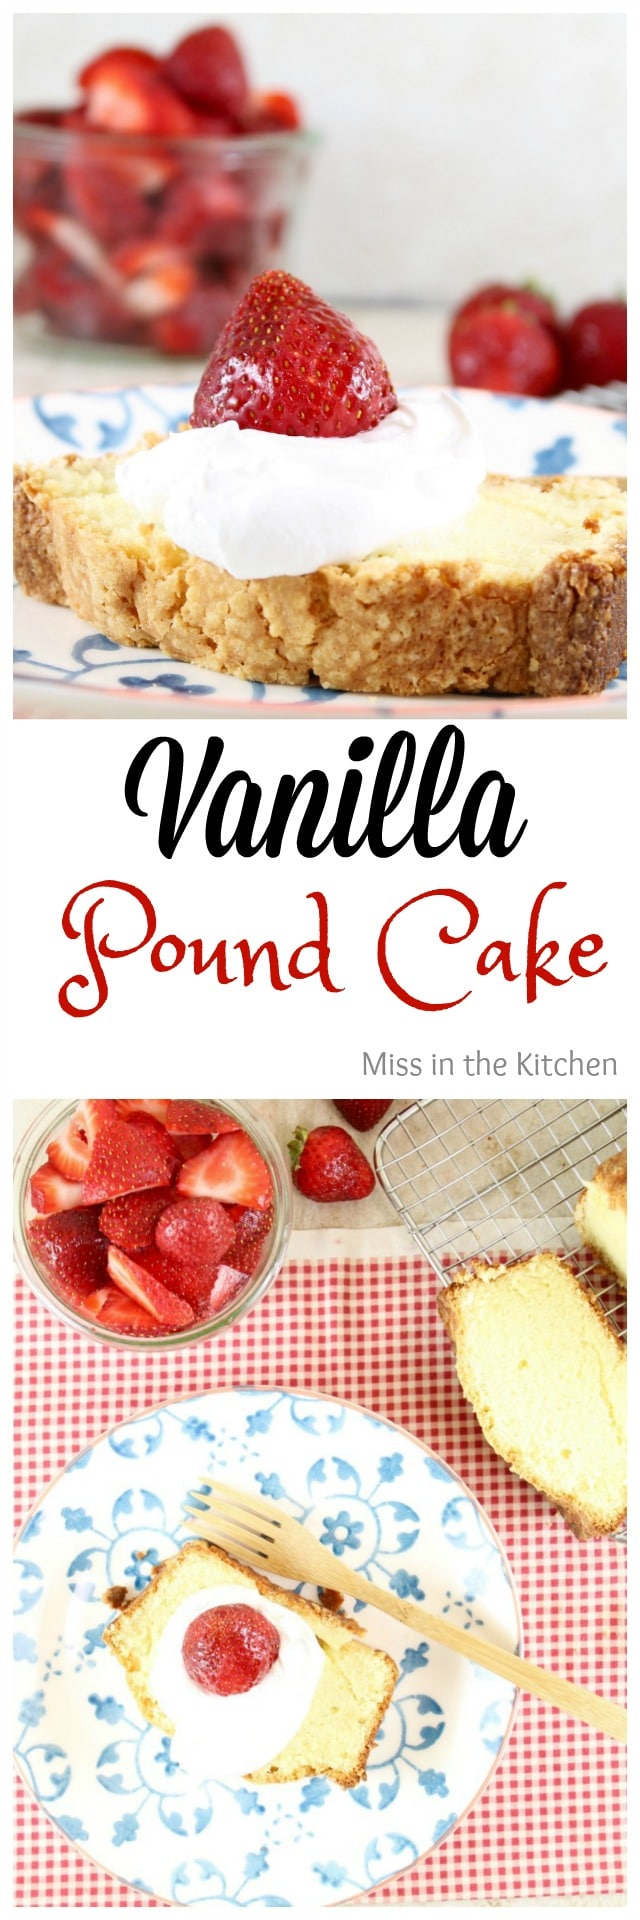 Vanilla Pound Cake Recipe from Fast and Easy Five Ingredient Recipes ~ MissintheKitchen.com #SweetPhiCookbook